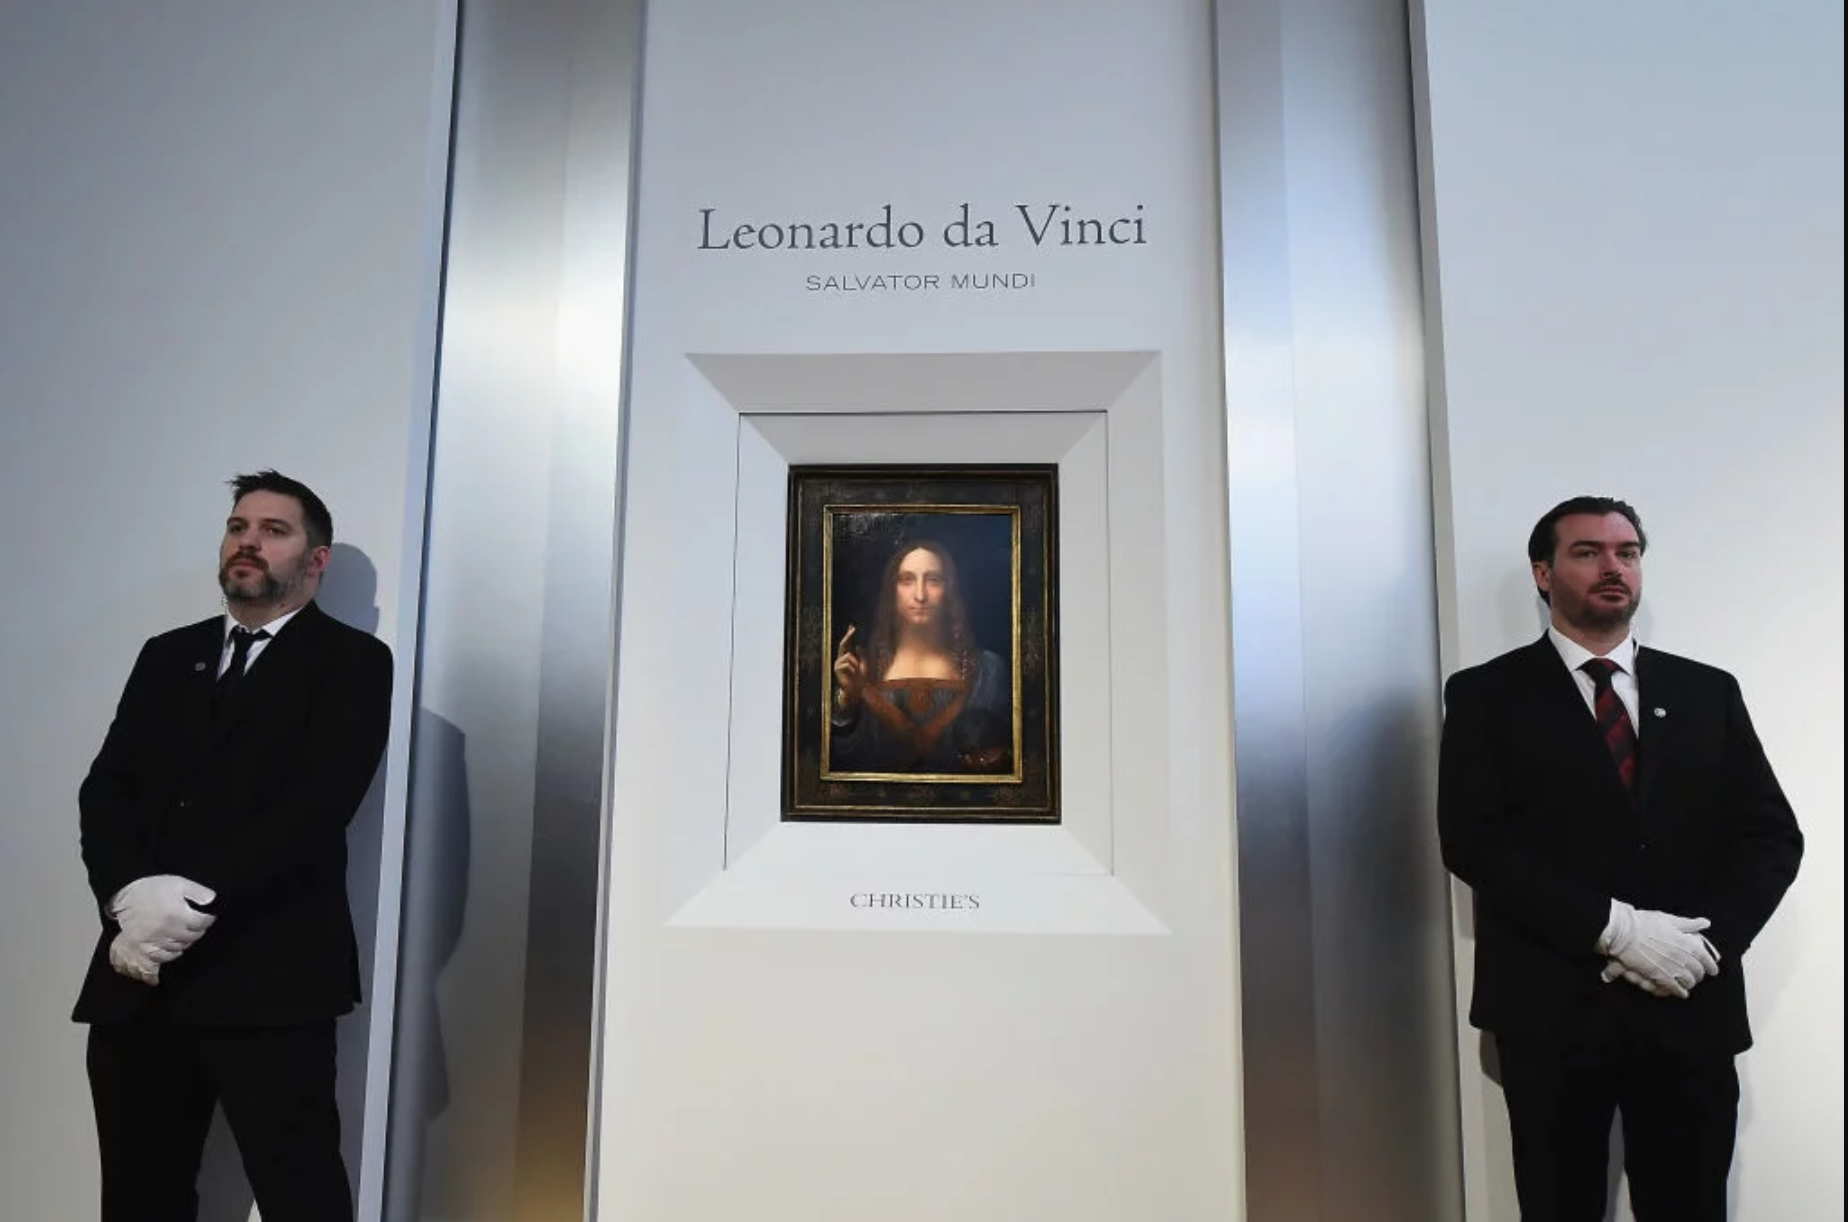 Christie's unveils Leonardo da Vinci's Salvator Mundi [pictured]on October 10, 2017 in New York City. Photo by Ilya S. Savenok/Getty Images for Christie's Auction House, SOURCED FROM ARTNET NEWS. POSTED 14 DECEMBER 2017.